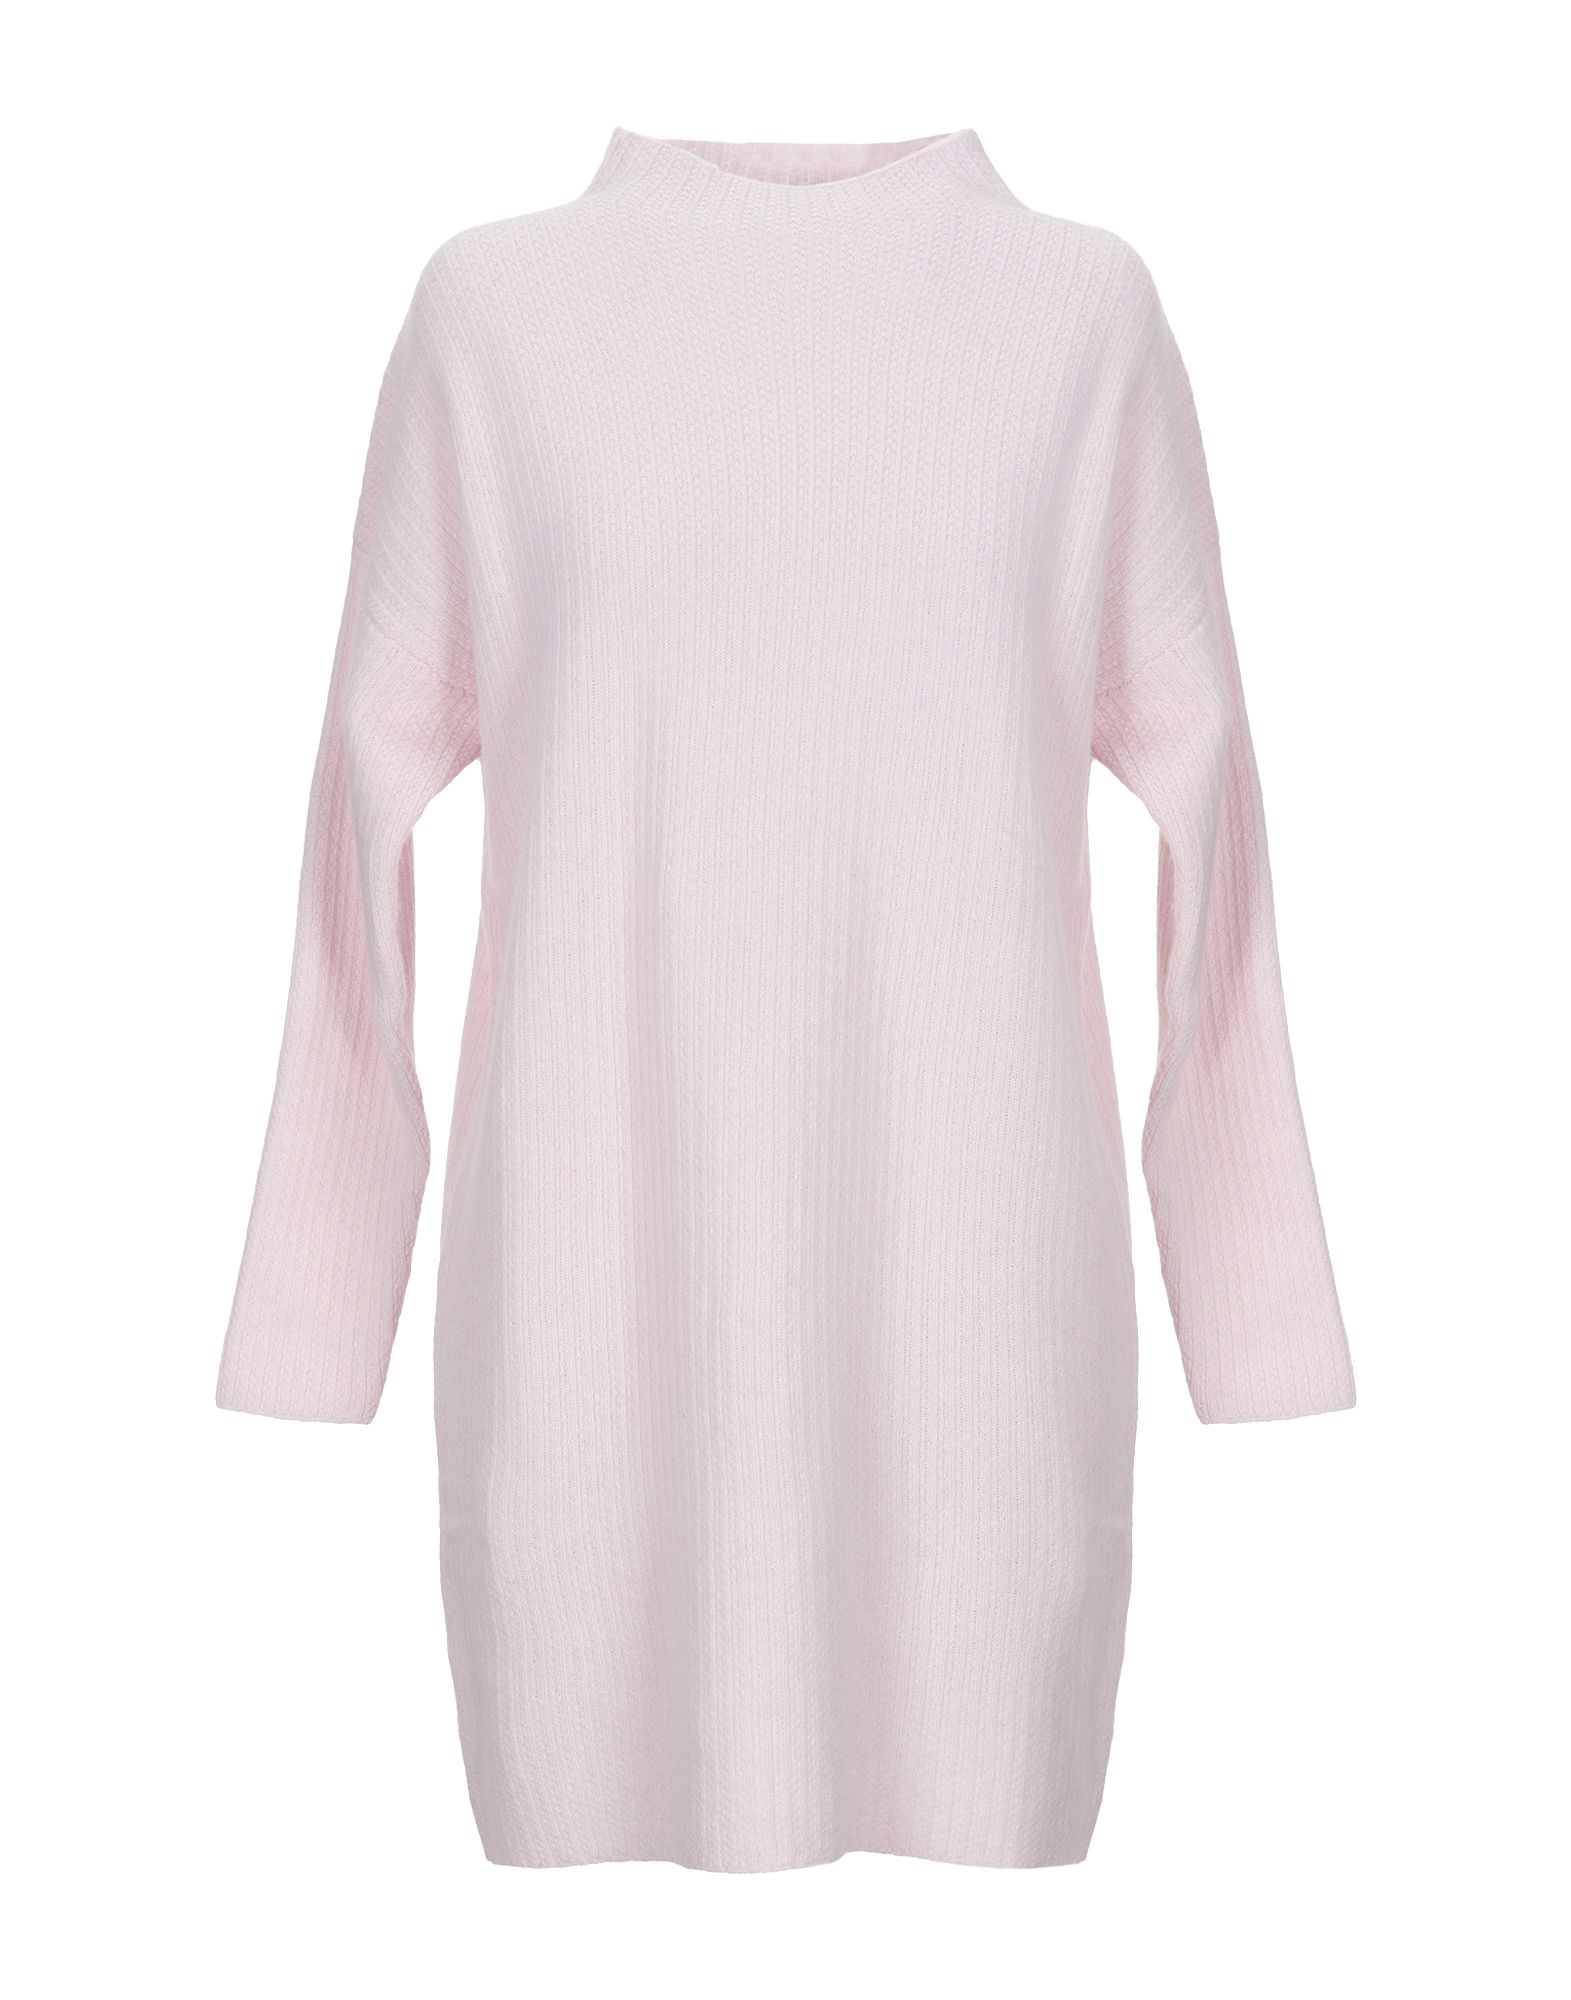 1cdae01fd Cashmere - Buy Best Cashmere from Fashion Influencers | Brick & Portal